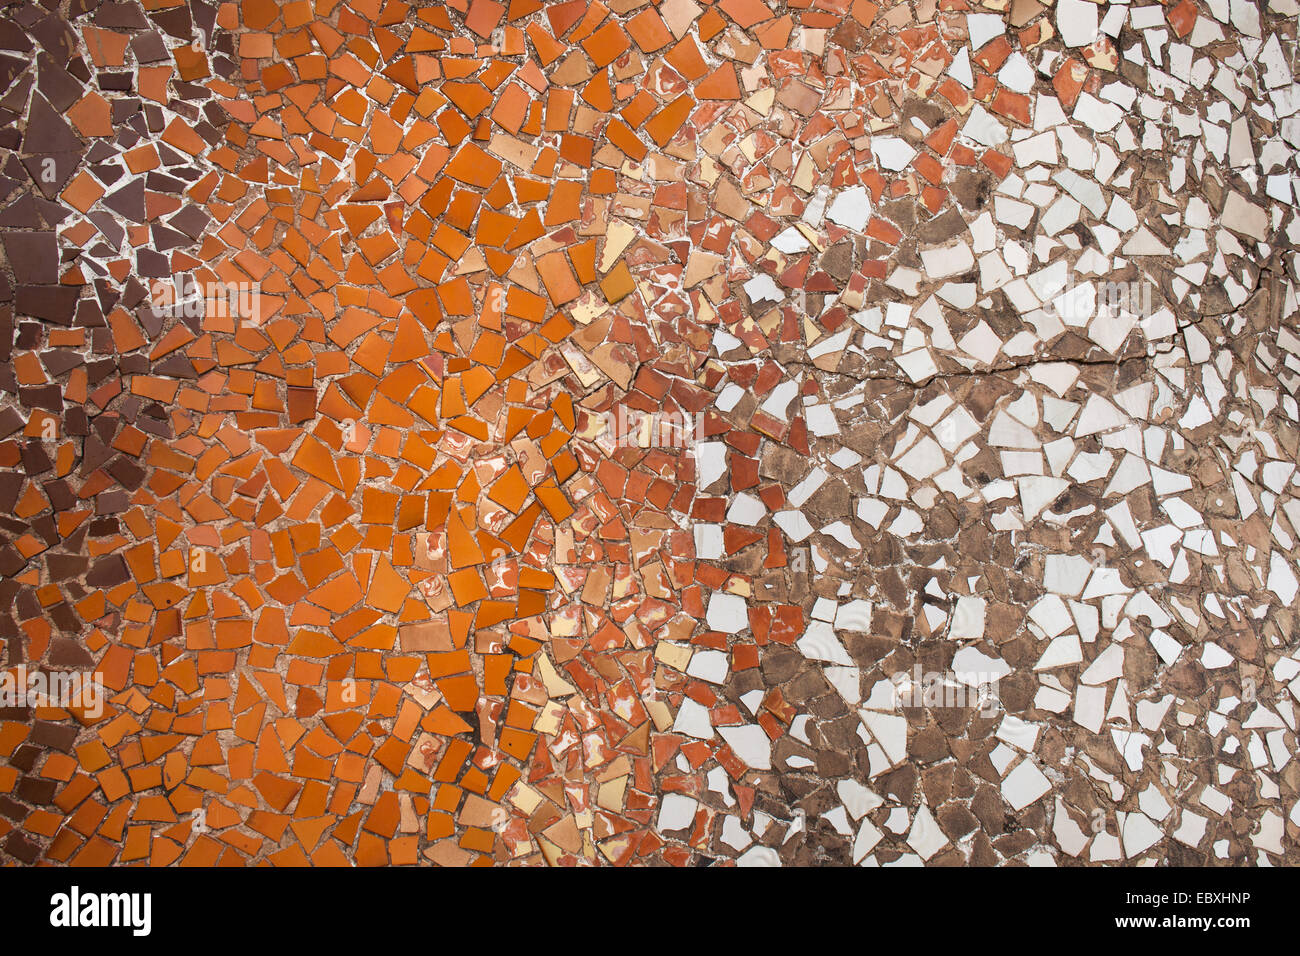 Trencadis Mosaic Background Or Texture From Broken Pieces